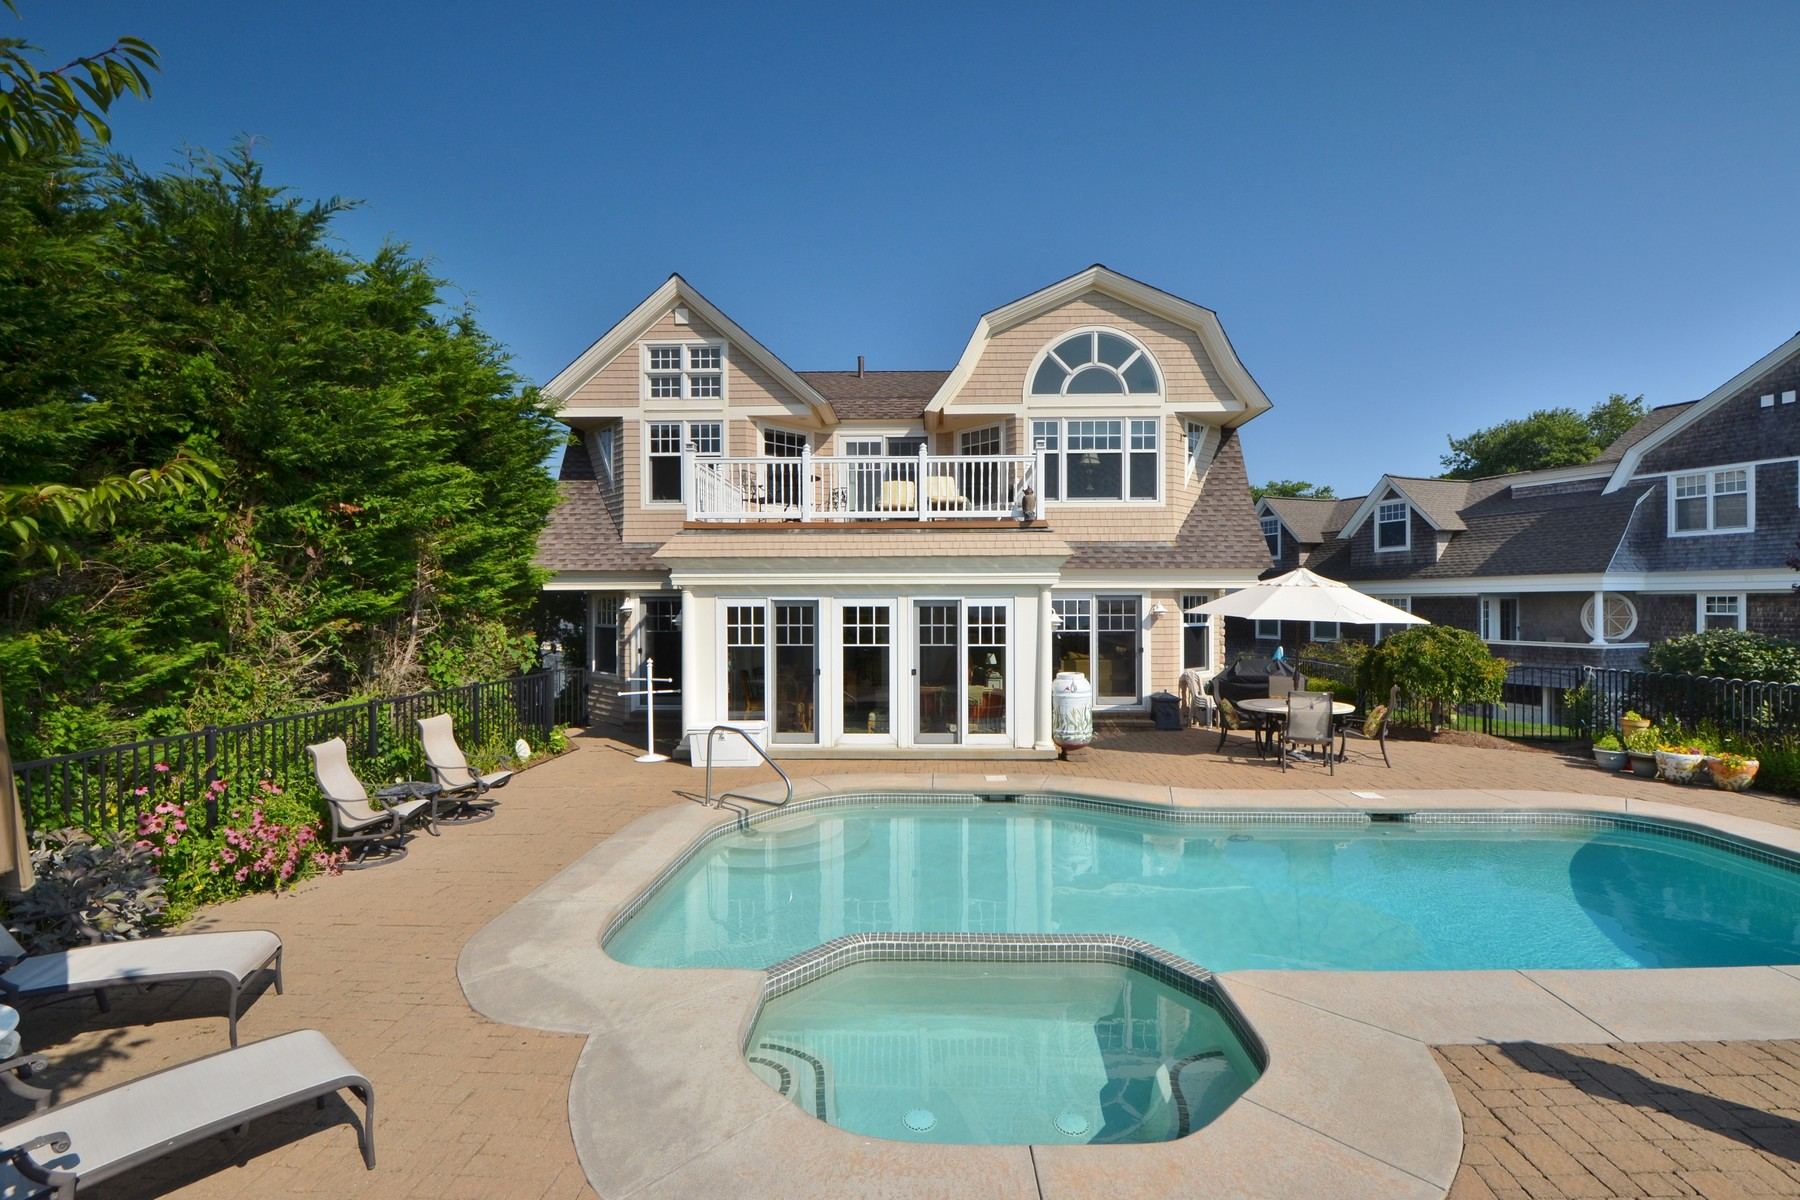 Tek Ailelik Ev için Satış at Direct Waterfront Home Overlooks Long Island Sound 10 Billow Rd Old Saybrook, Connecticut, 06475 Amerika Birleşik Devletleri